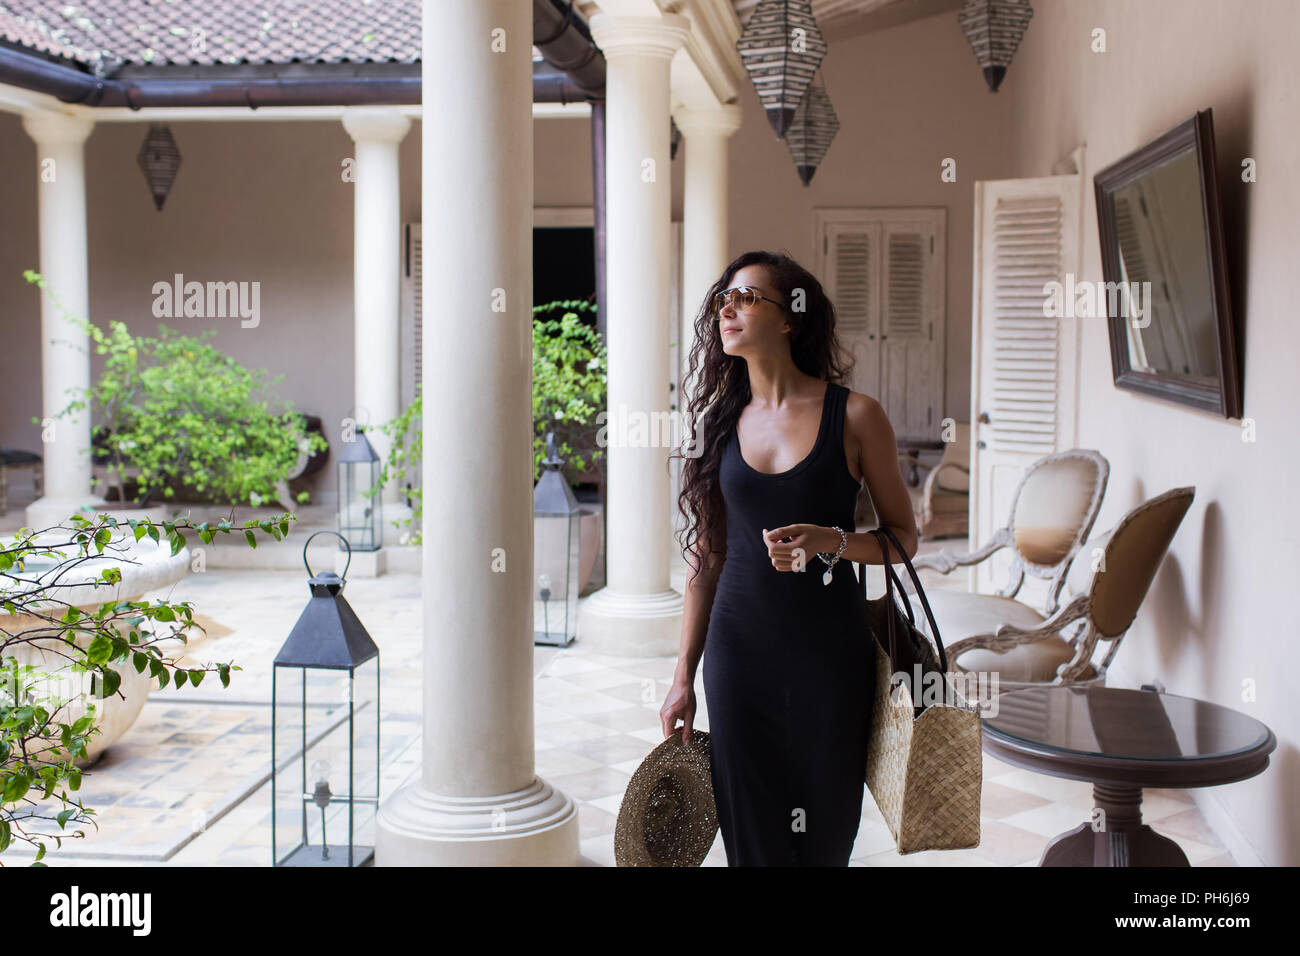 Pleased woman in black dress after shopping with straw bag in luxury mall with white walls and columns - Stock Image